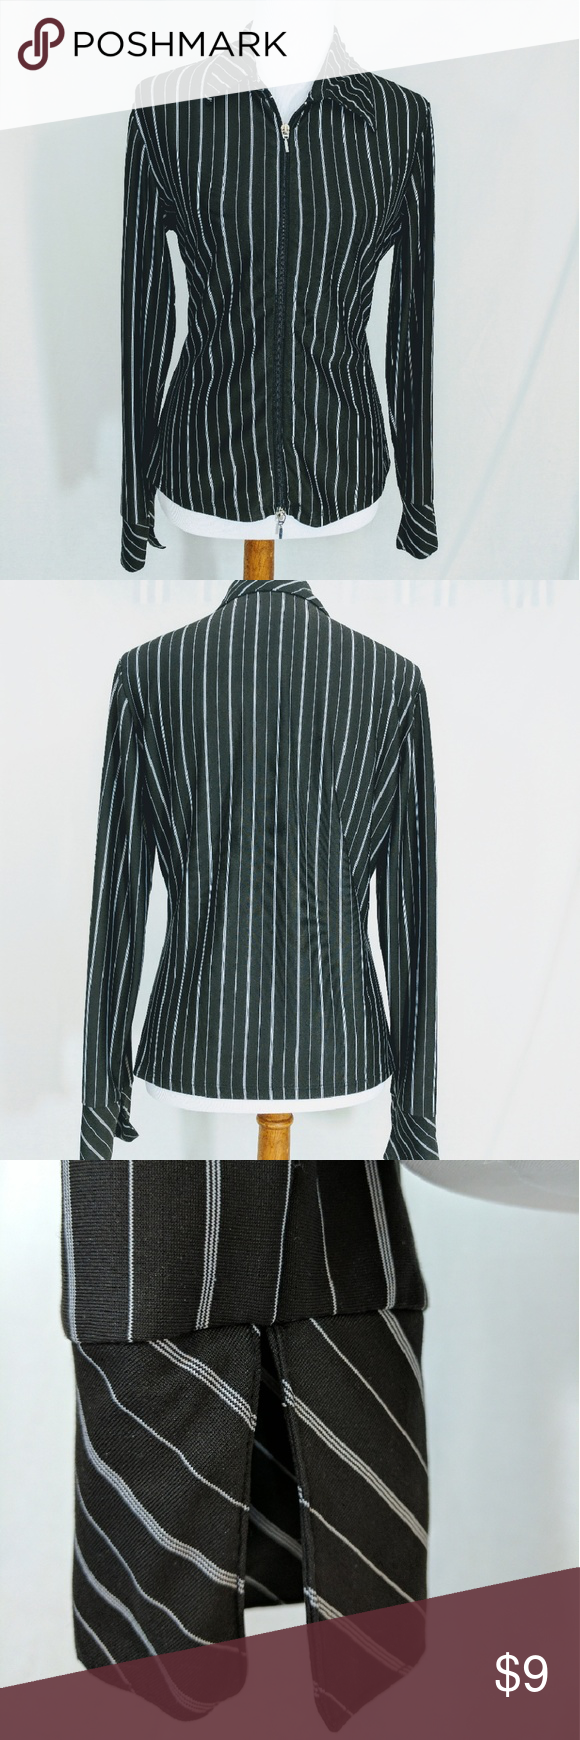 Zip-front black/white pinstripe blouse Up/Down Zip front,  B&W poly collared top.  French Cuffs.  Wear to work or to Motorhead show- easy care and looks good all of the time. Langenis. Tops Blouses